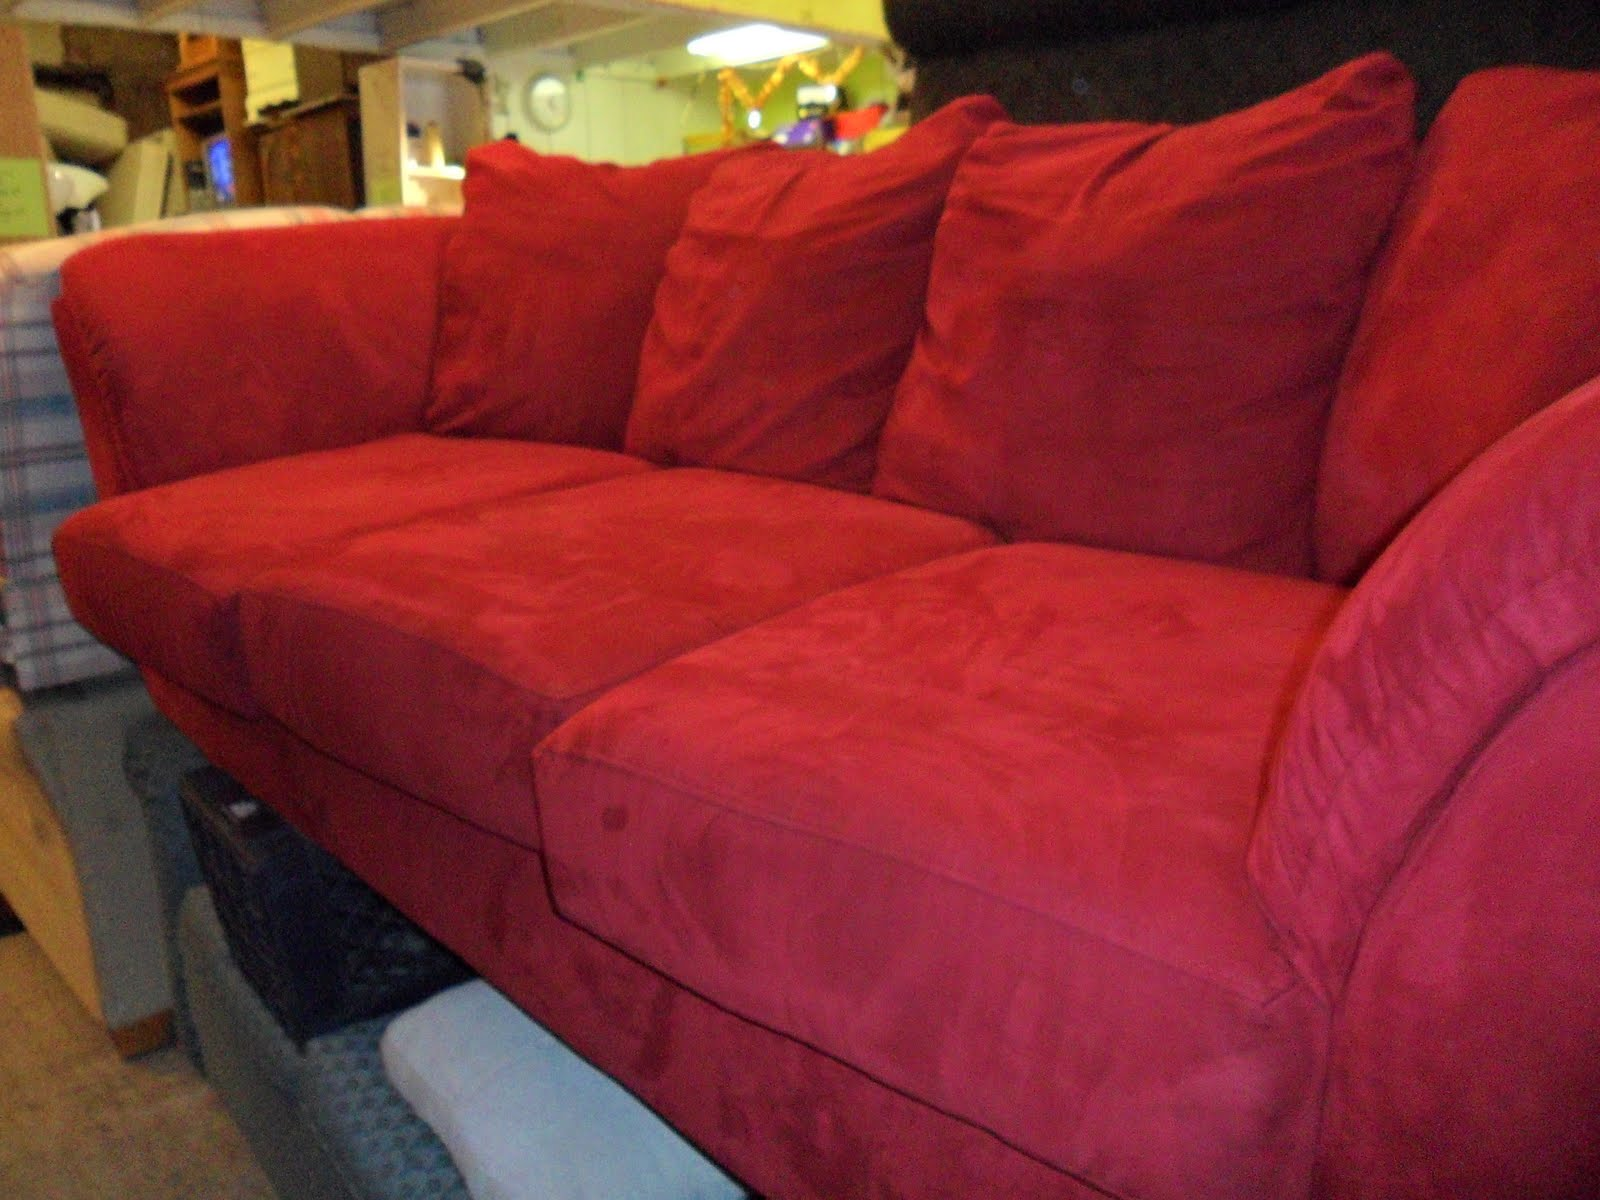 Red Microfiber Sofa Elegant Convertible Sectional Sofa W Storages In Red Microfiber Thesofa